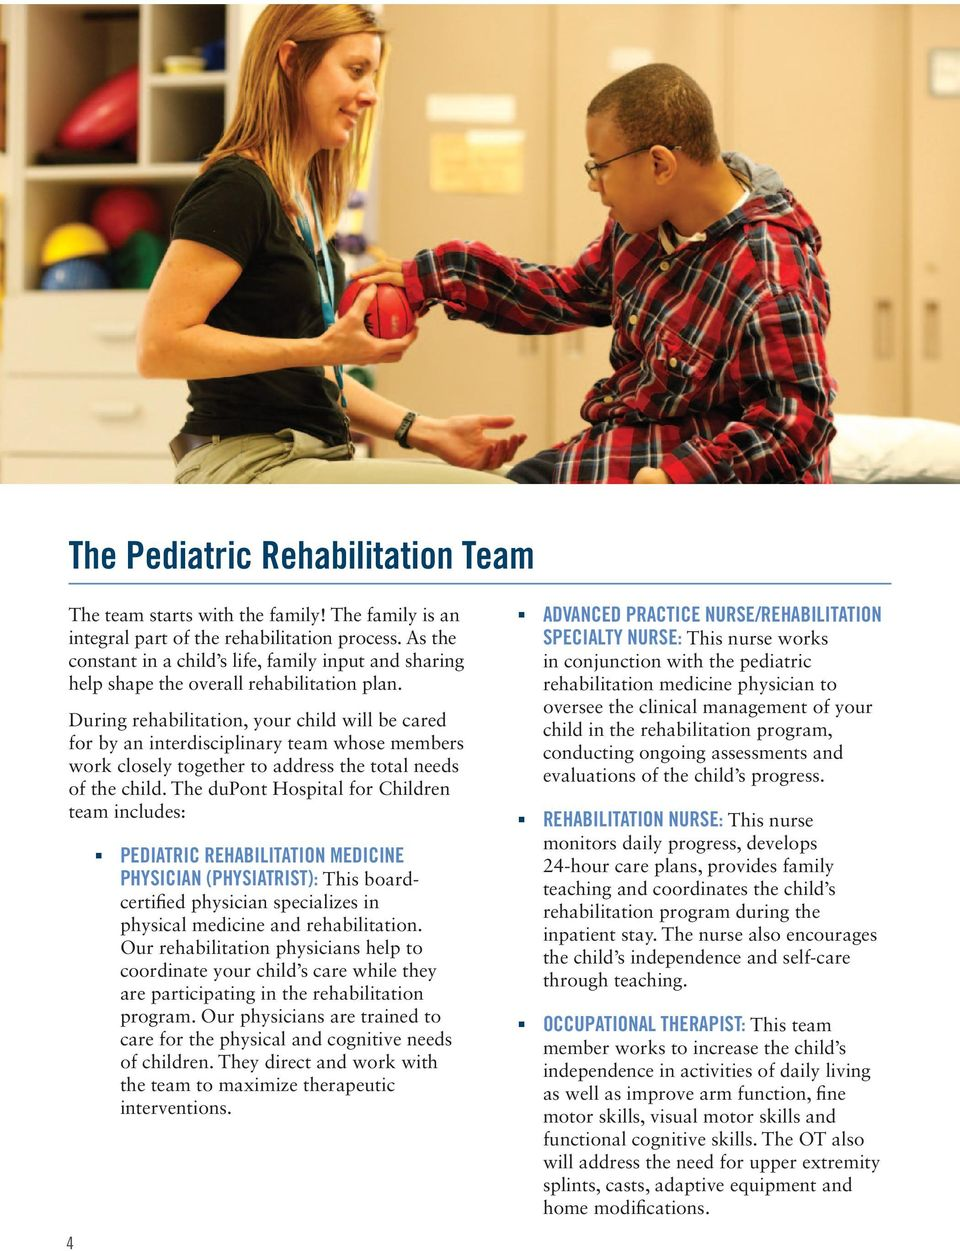 During rehabilitation, your child will be cared for by an interdisciplinary team whose members work closely together to address the total needs of the child.